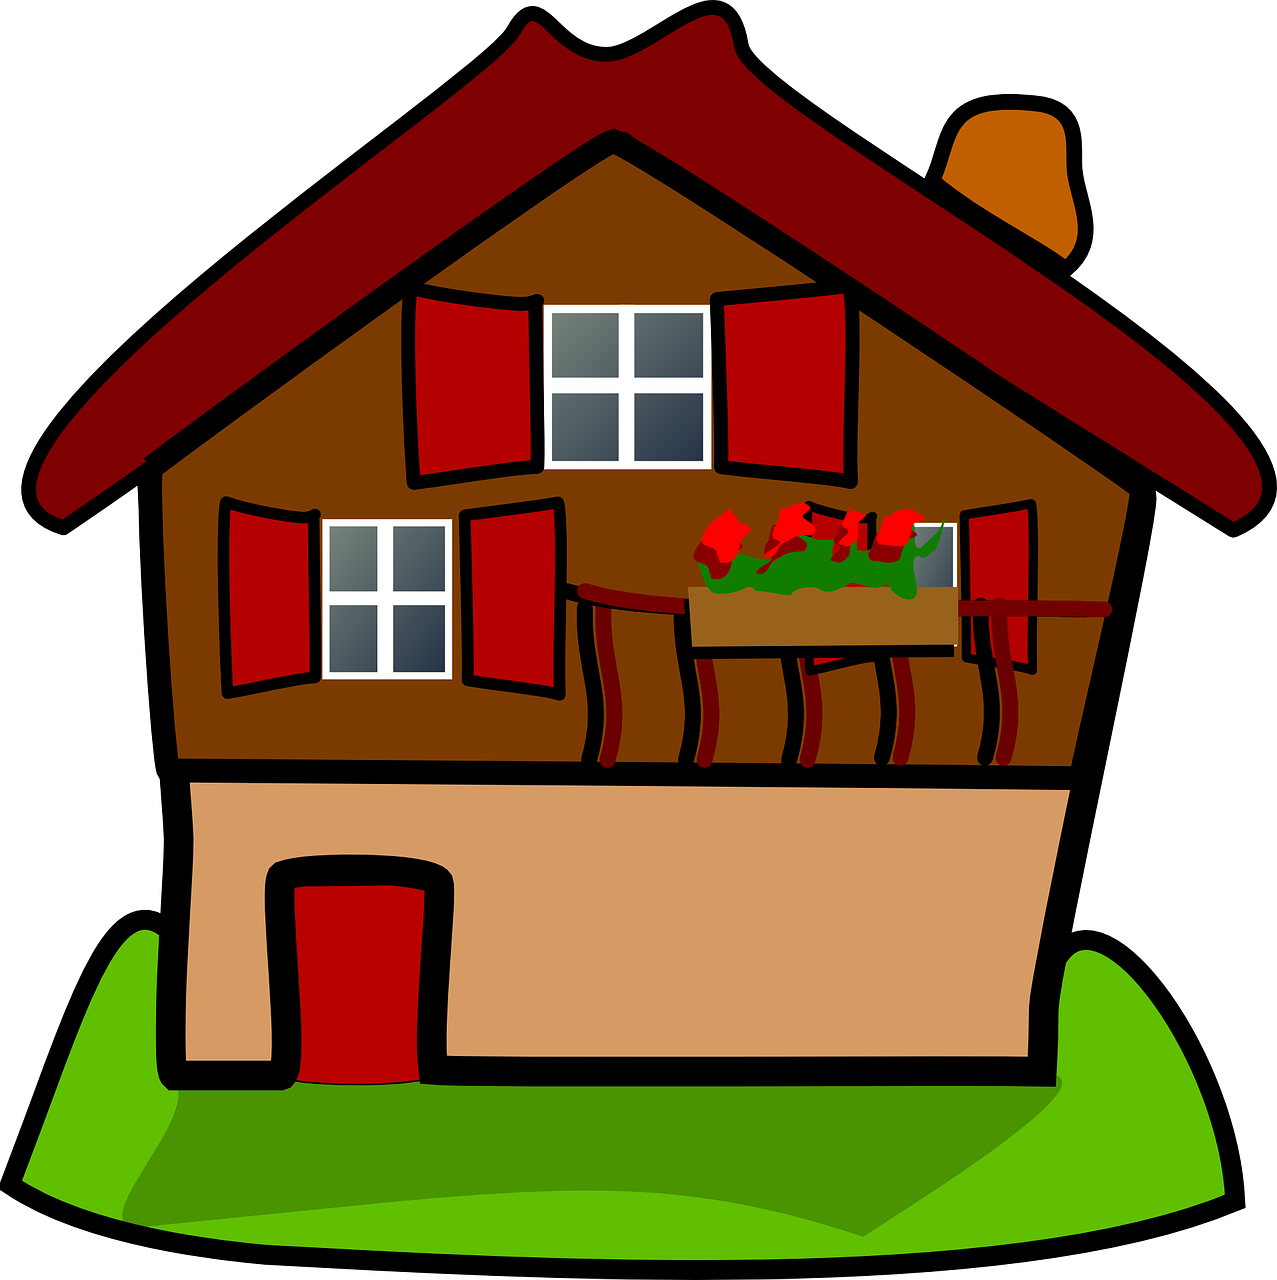 Cottage clipart frontyard. Prepare before you browse